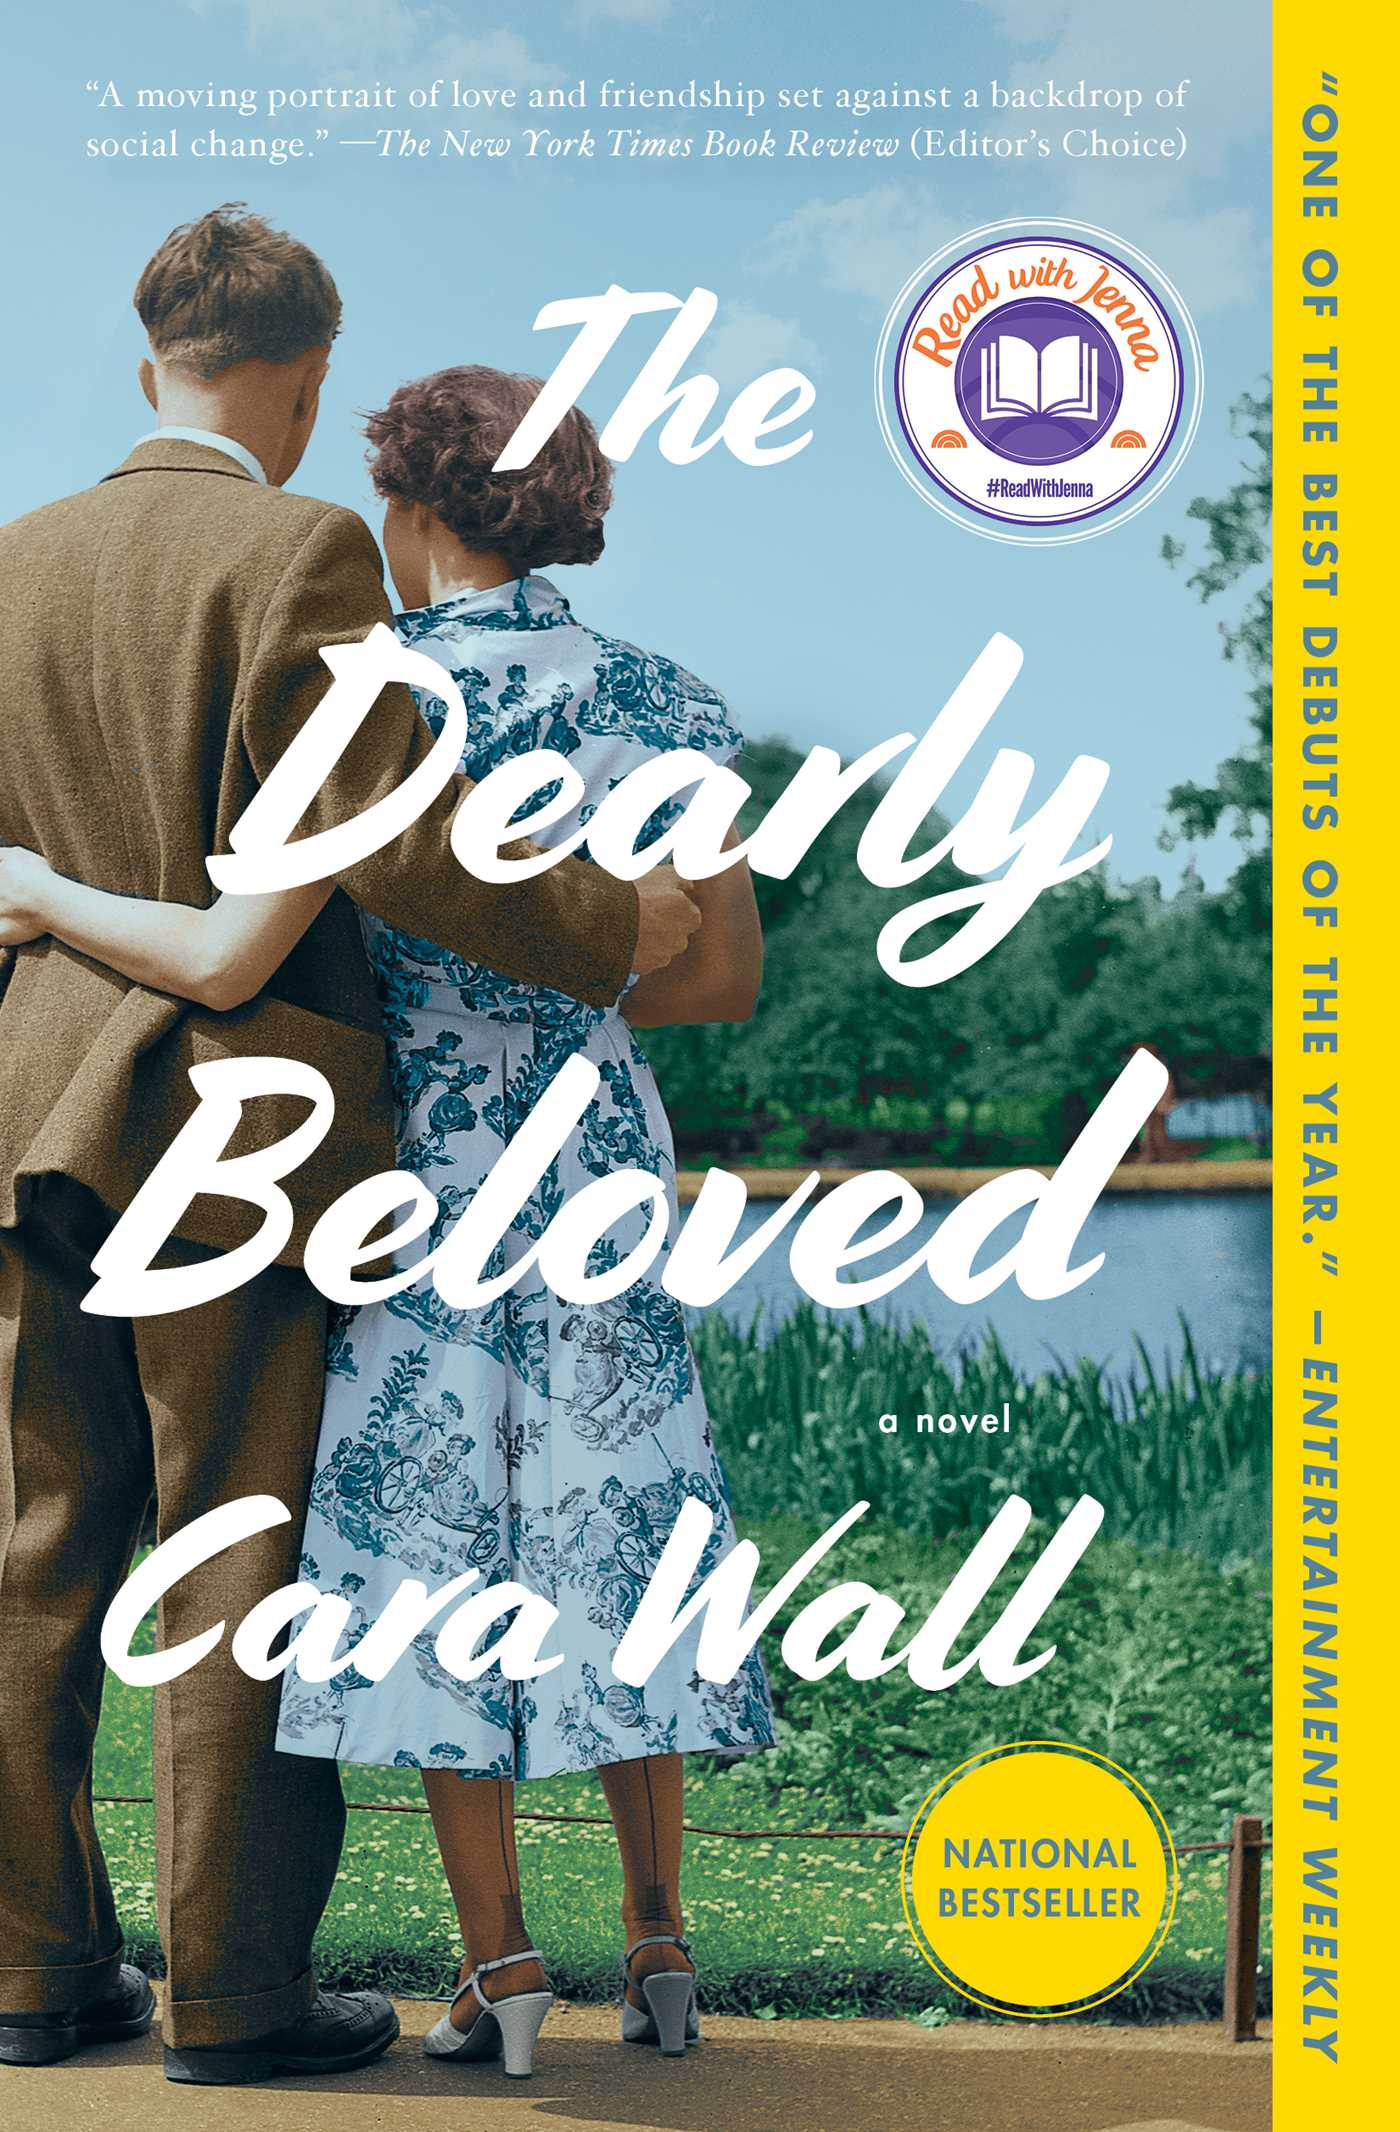 The Dearly Beloved [electronic resource] : A Novel